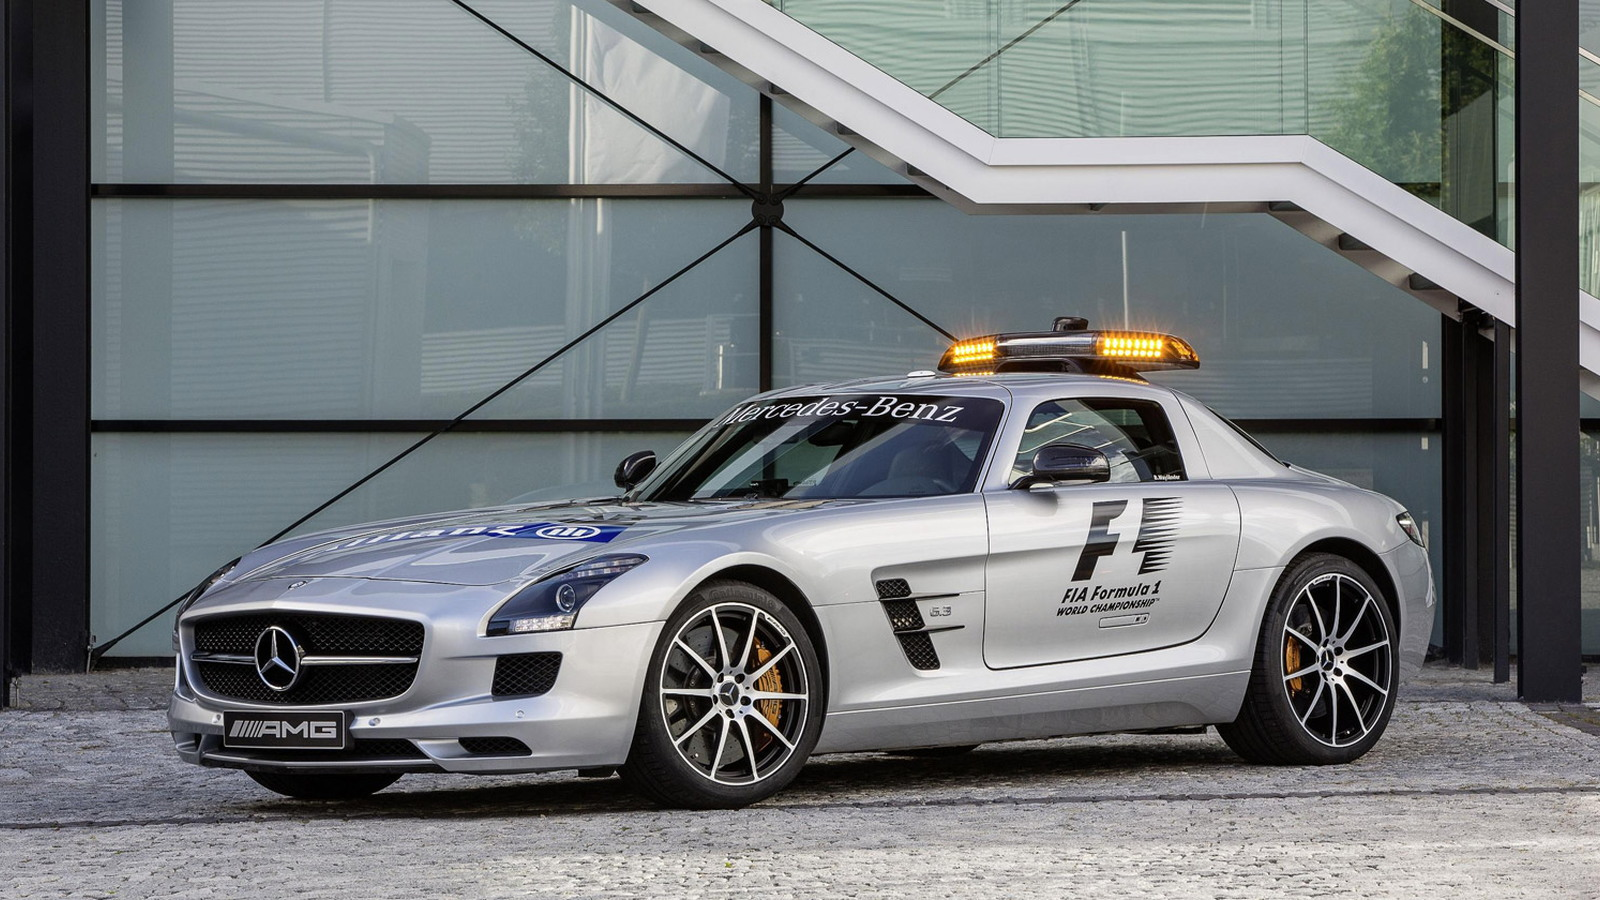 Mercedes-Benz SLS AMG GT is the official safety car for the 2012 Formula 1 season